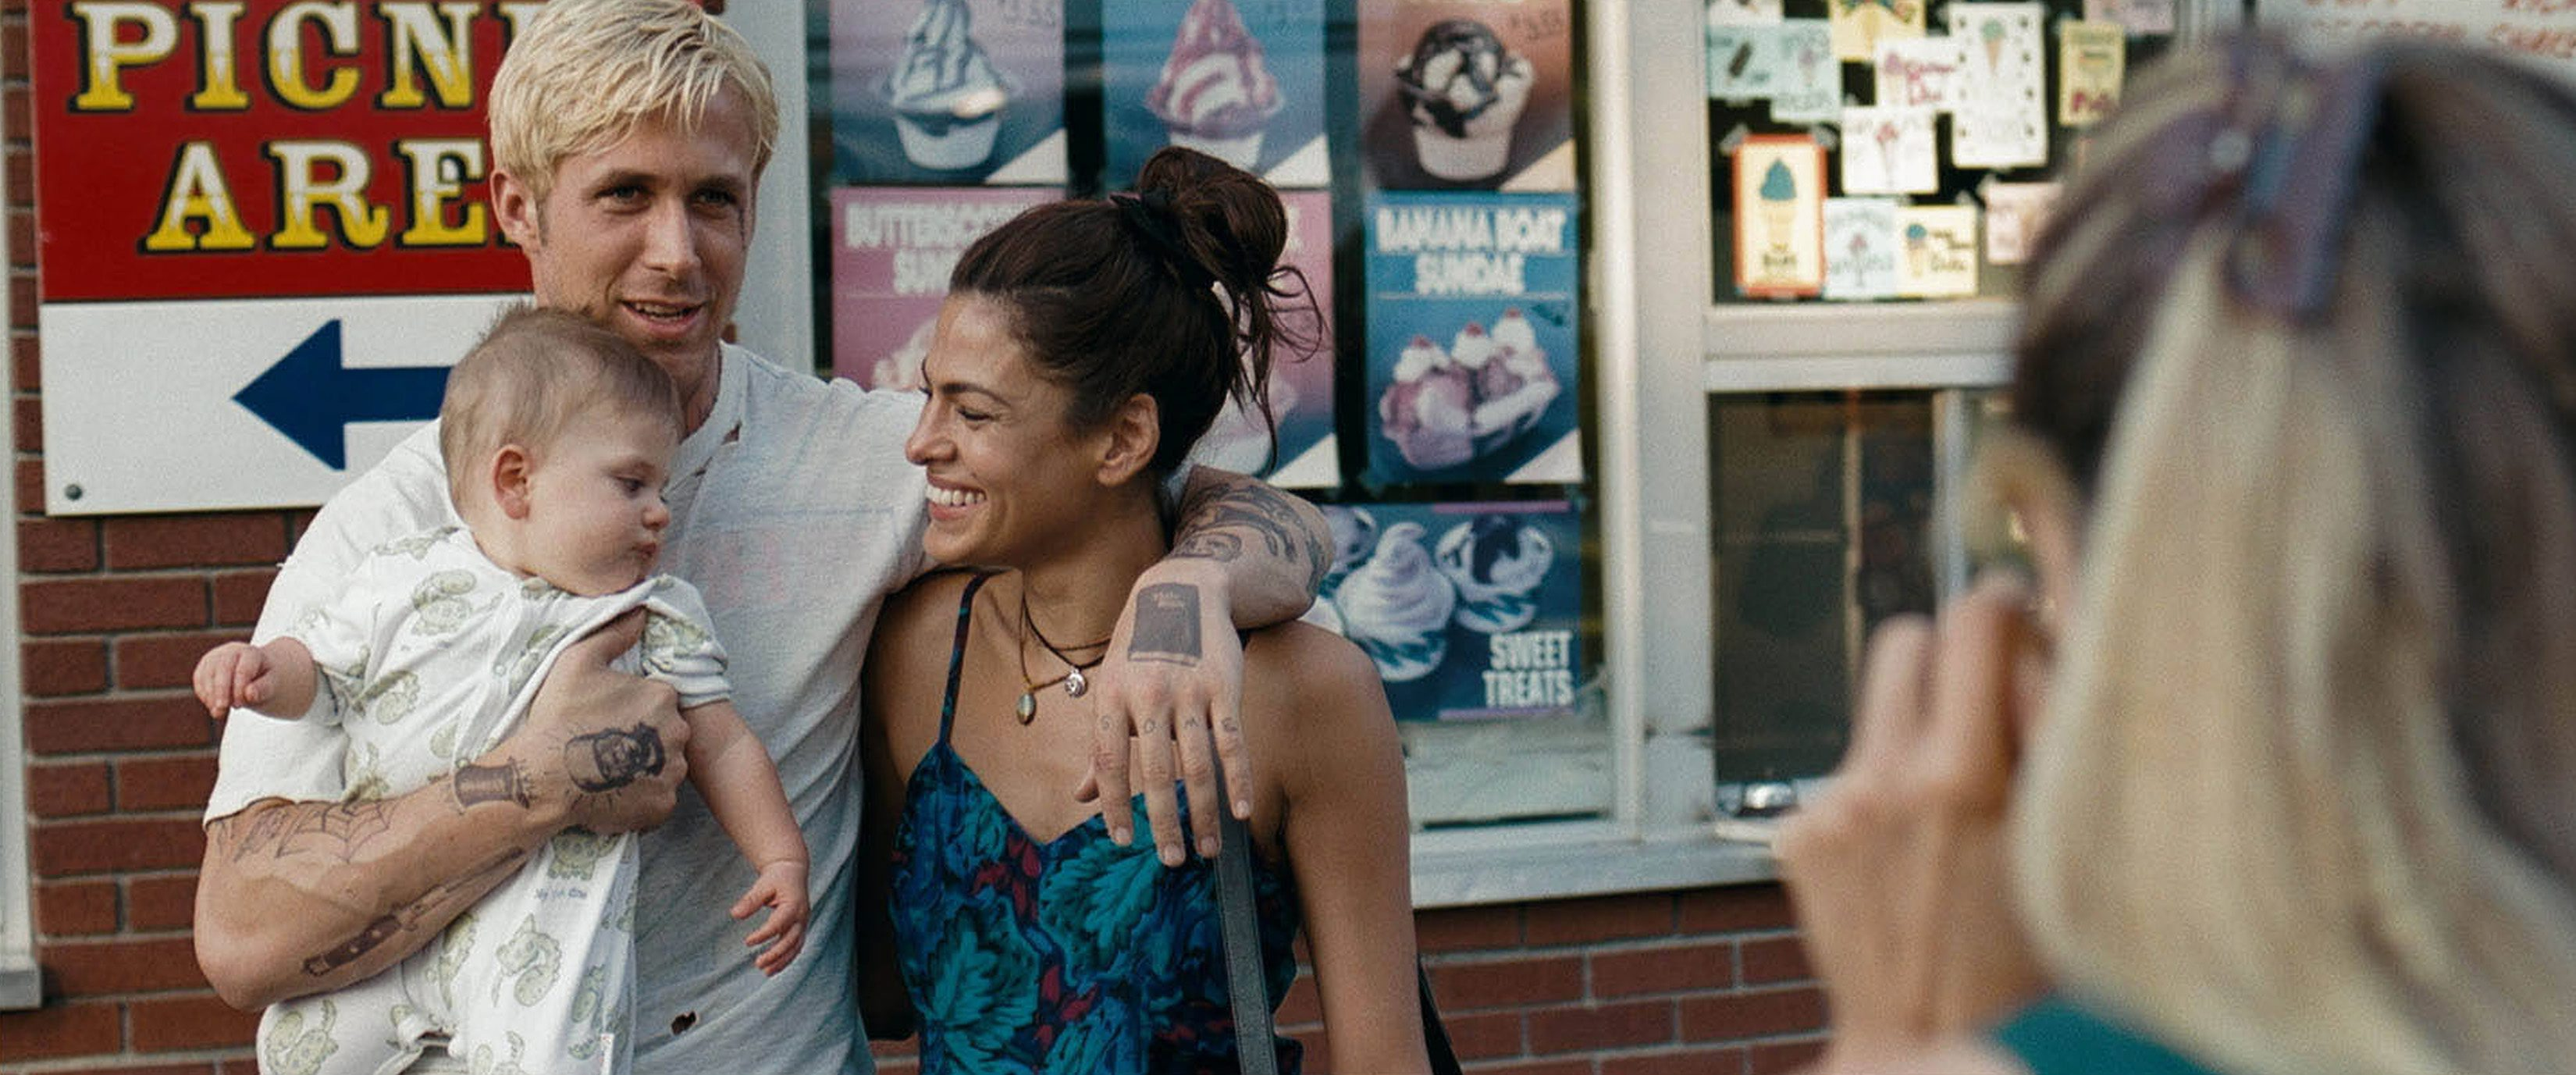 The Place Beyond the Pines – Savoir quand s'arrêter